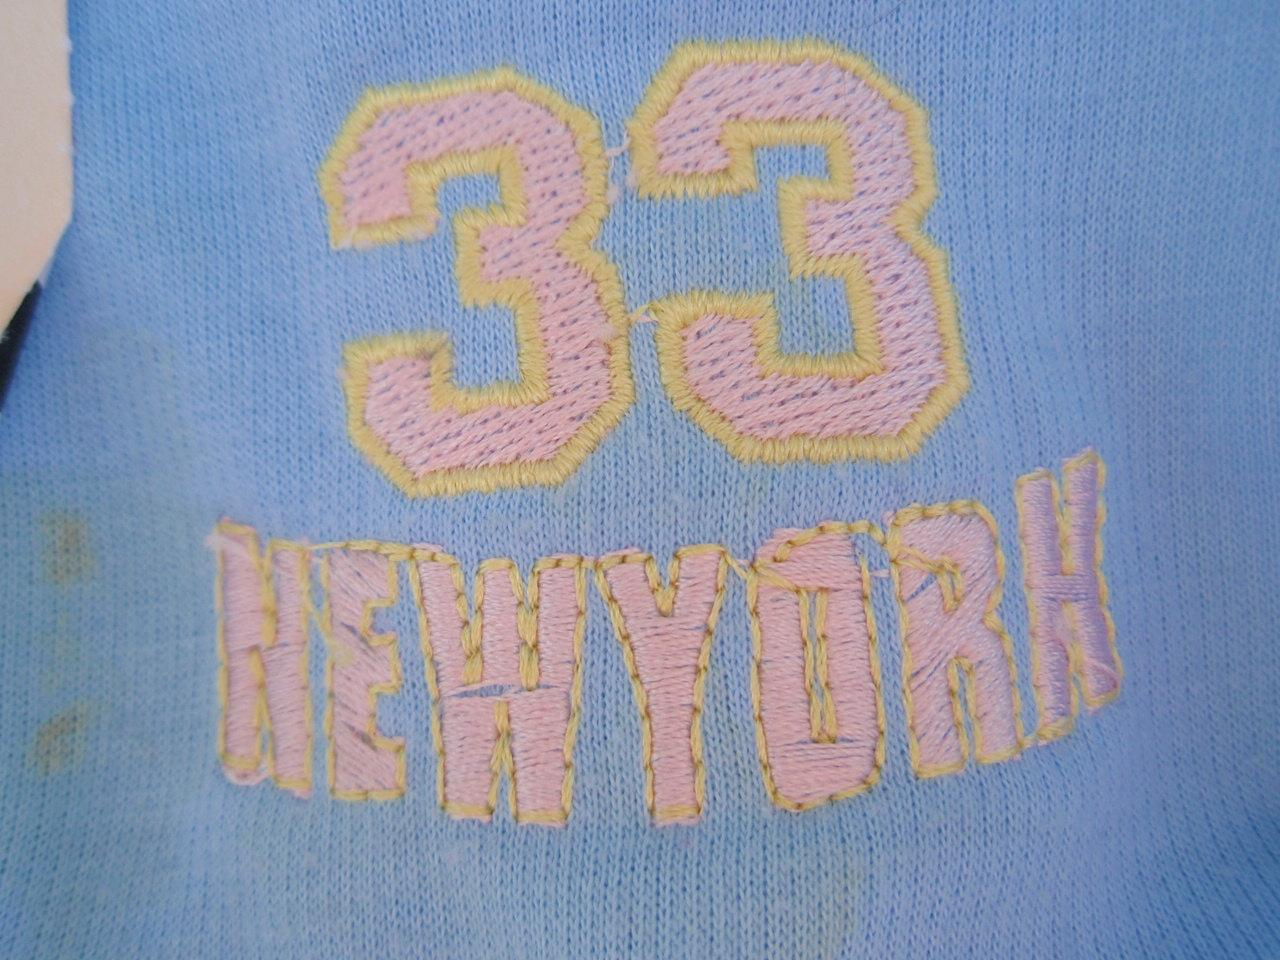 "Recalled New York jacket ""33 New York"" embroidery"